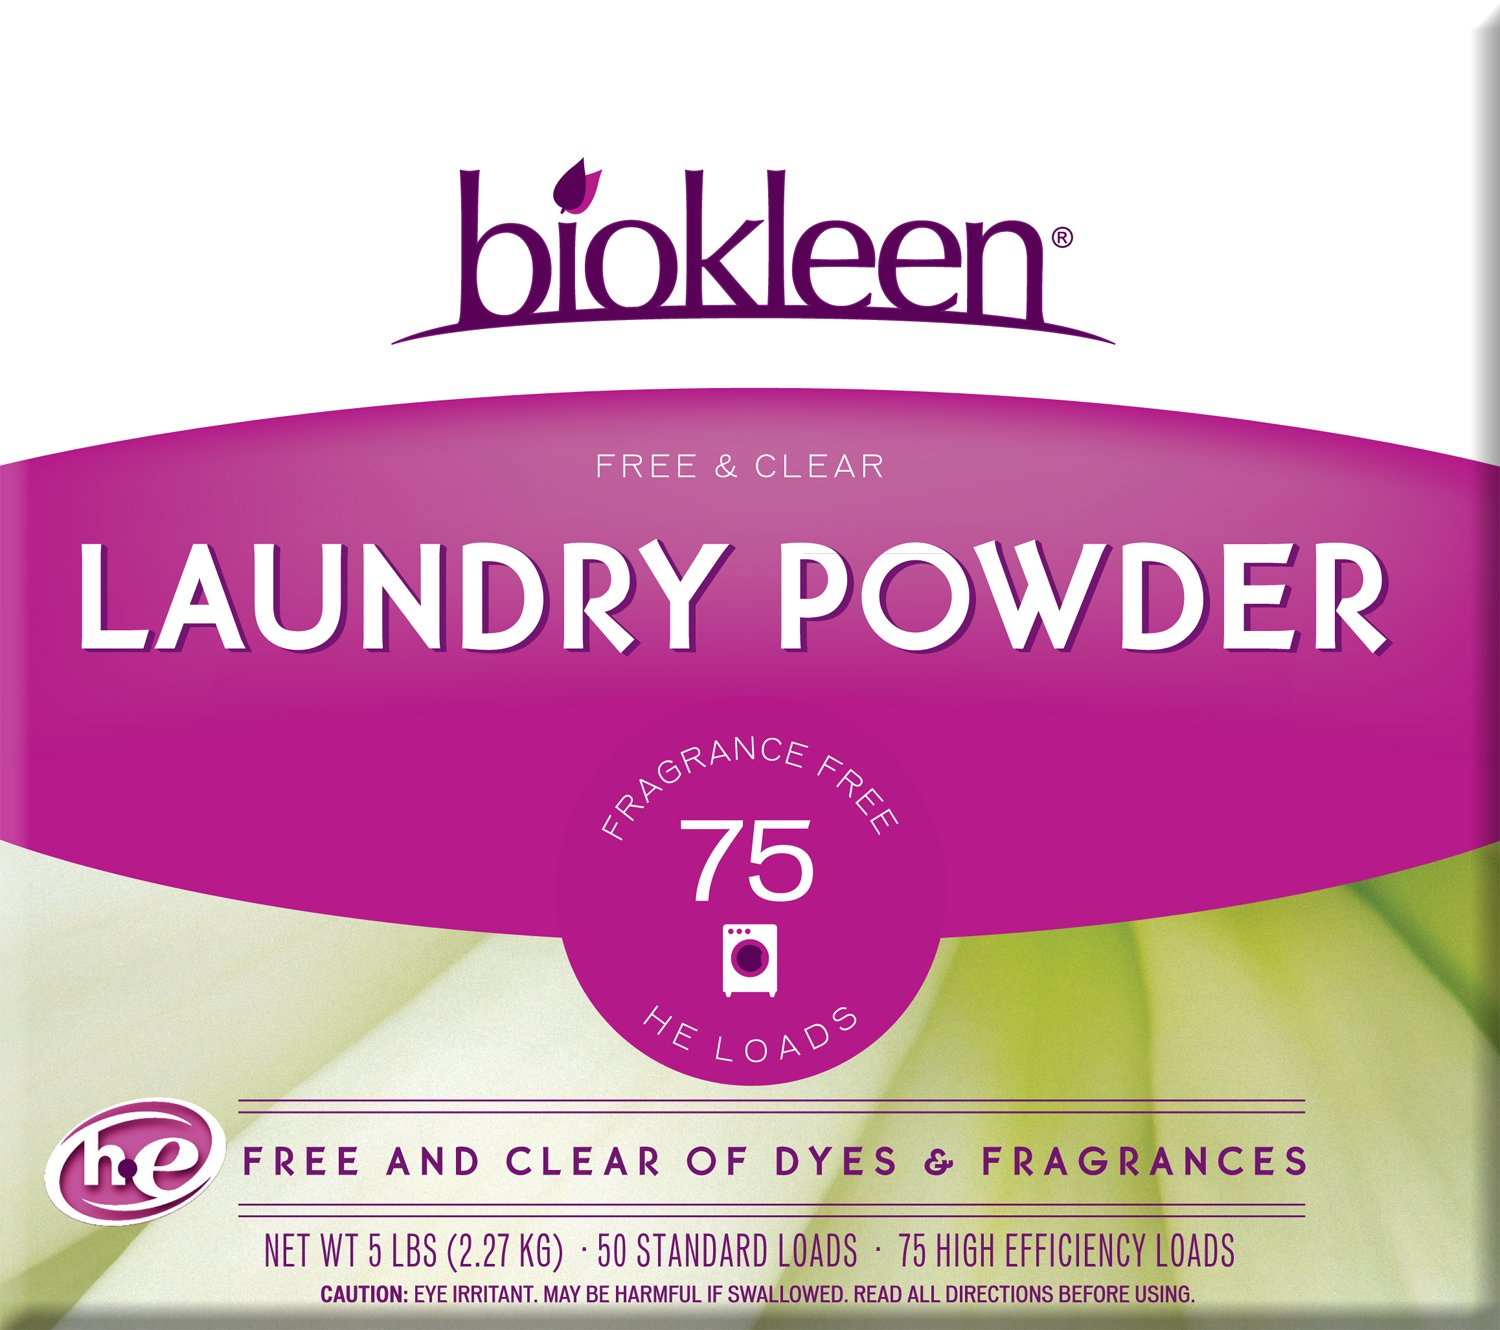 Biokleen Laundry Powder, Free & Clear, 5 Pounds (Pack of 8) by Biokleen